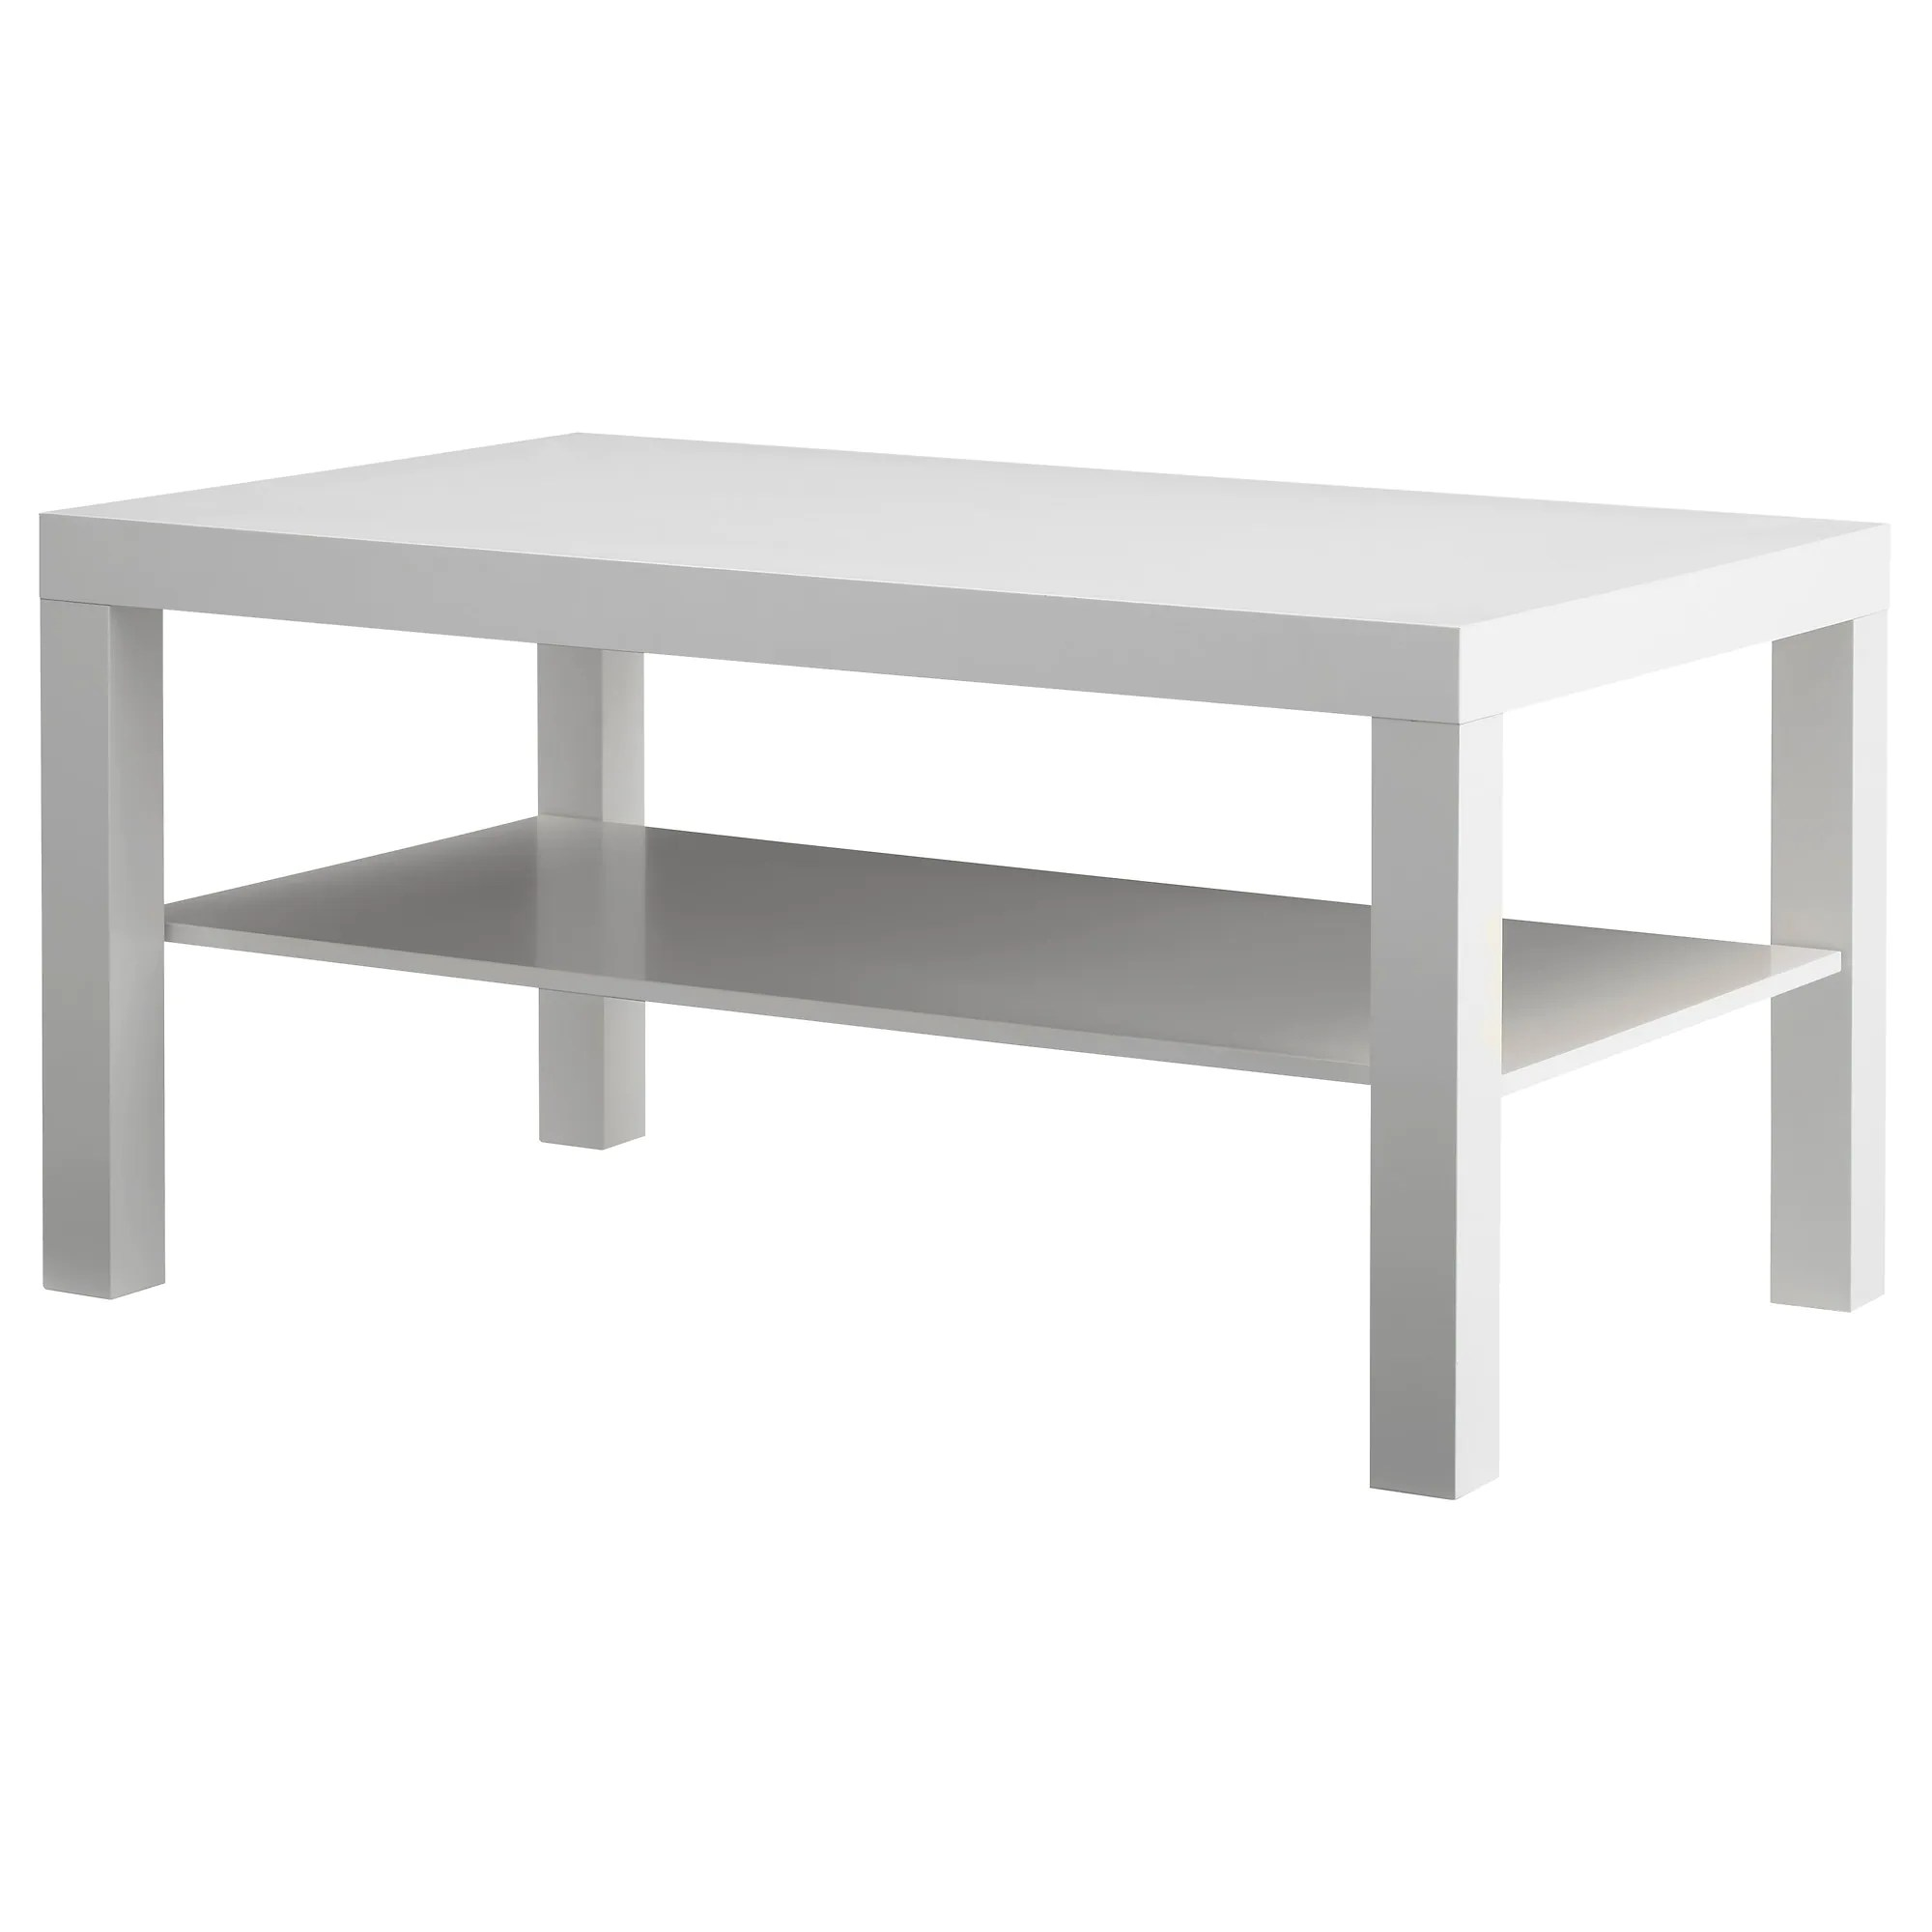 Ikea Table Lack Coffee Table White